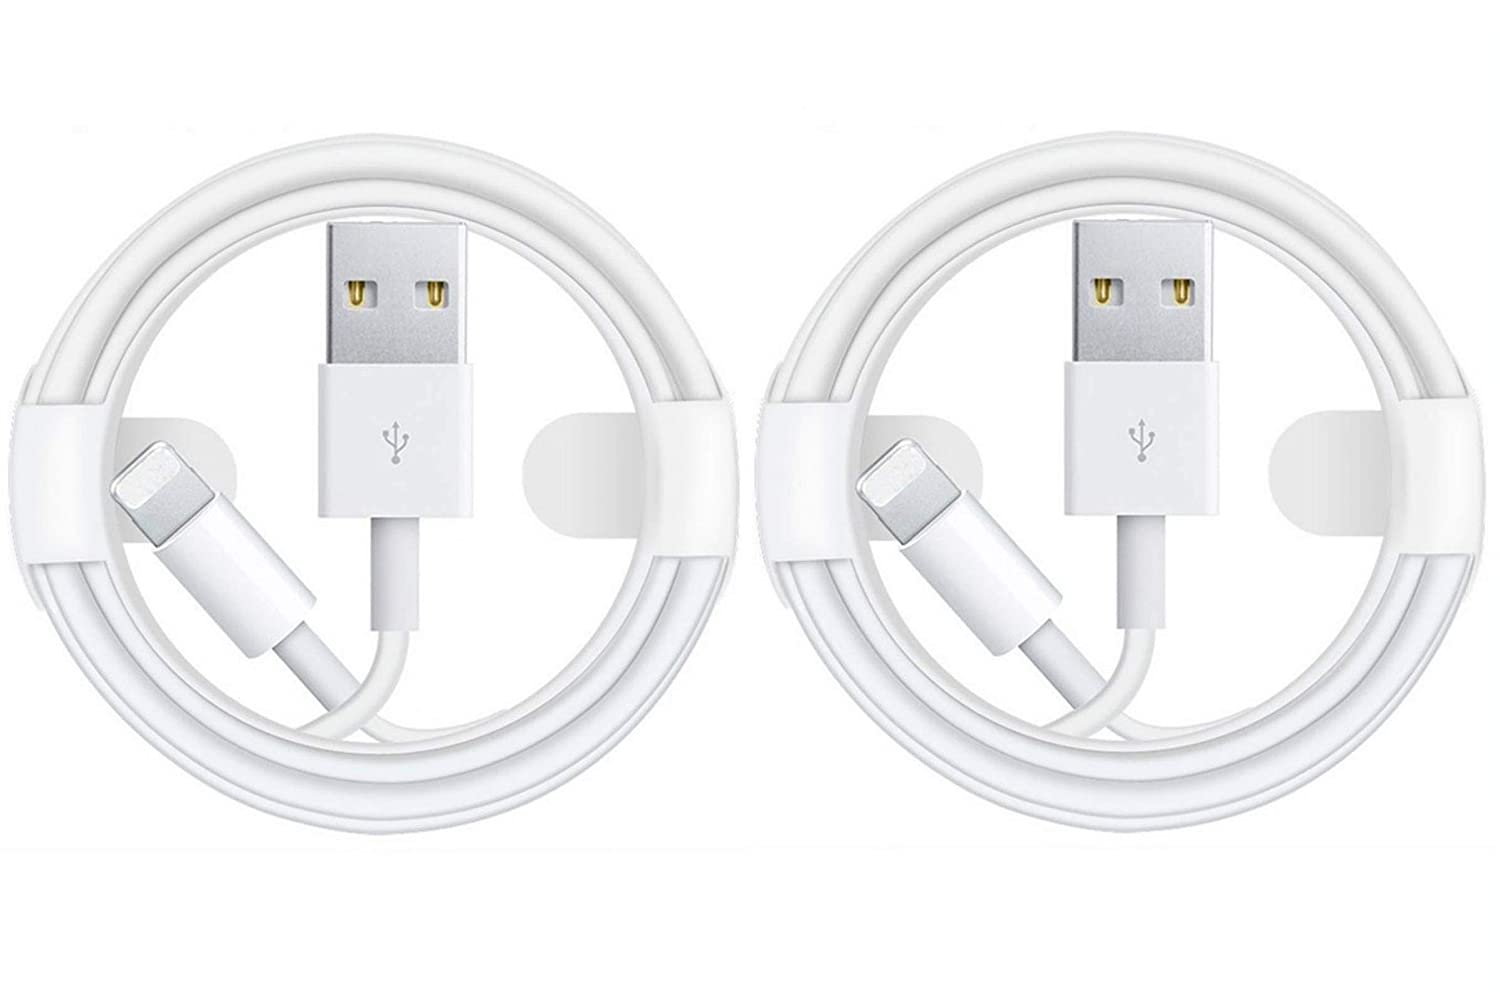 2Pack iPhone Charger Cable,Apple MFi Certified Chargers for iPhone/iPad USB Wall Fast Charging to Lightning Cable Compatible with iPhone 12 11 Pro Max XS XR X 8 7 6S 6 Plus SE 5S Connector Data Sync